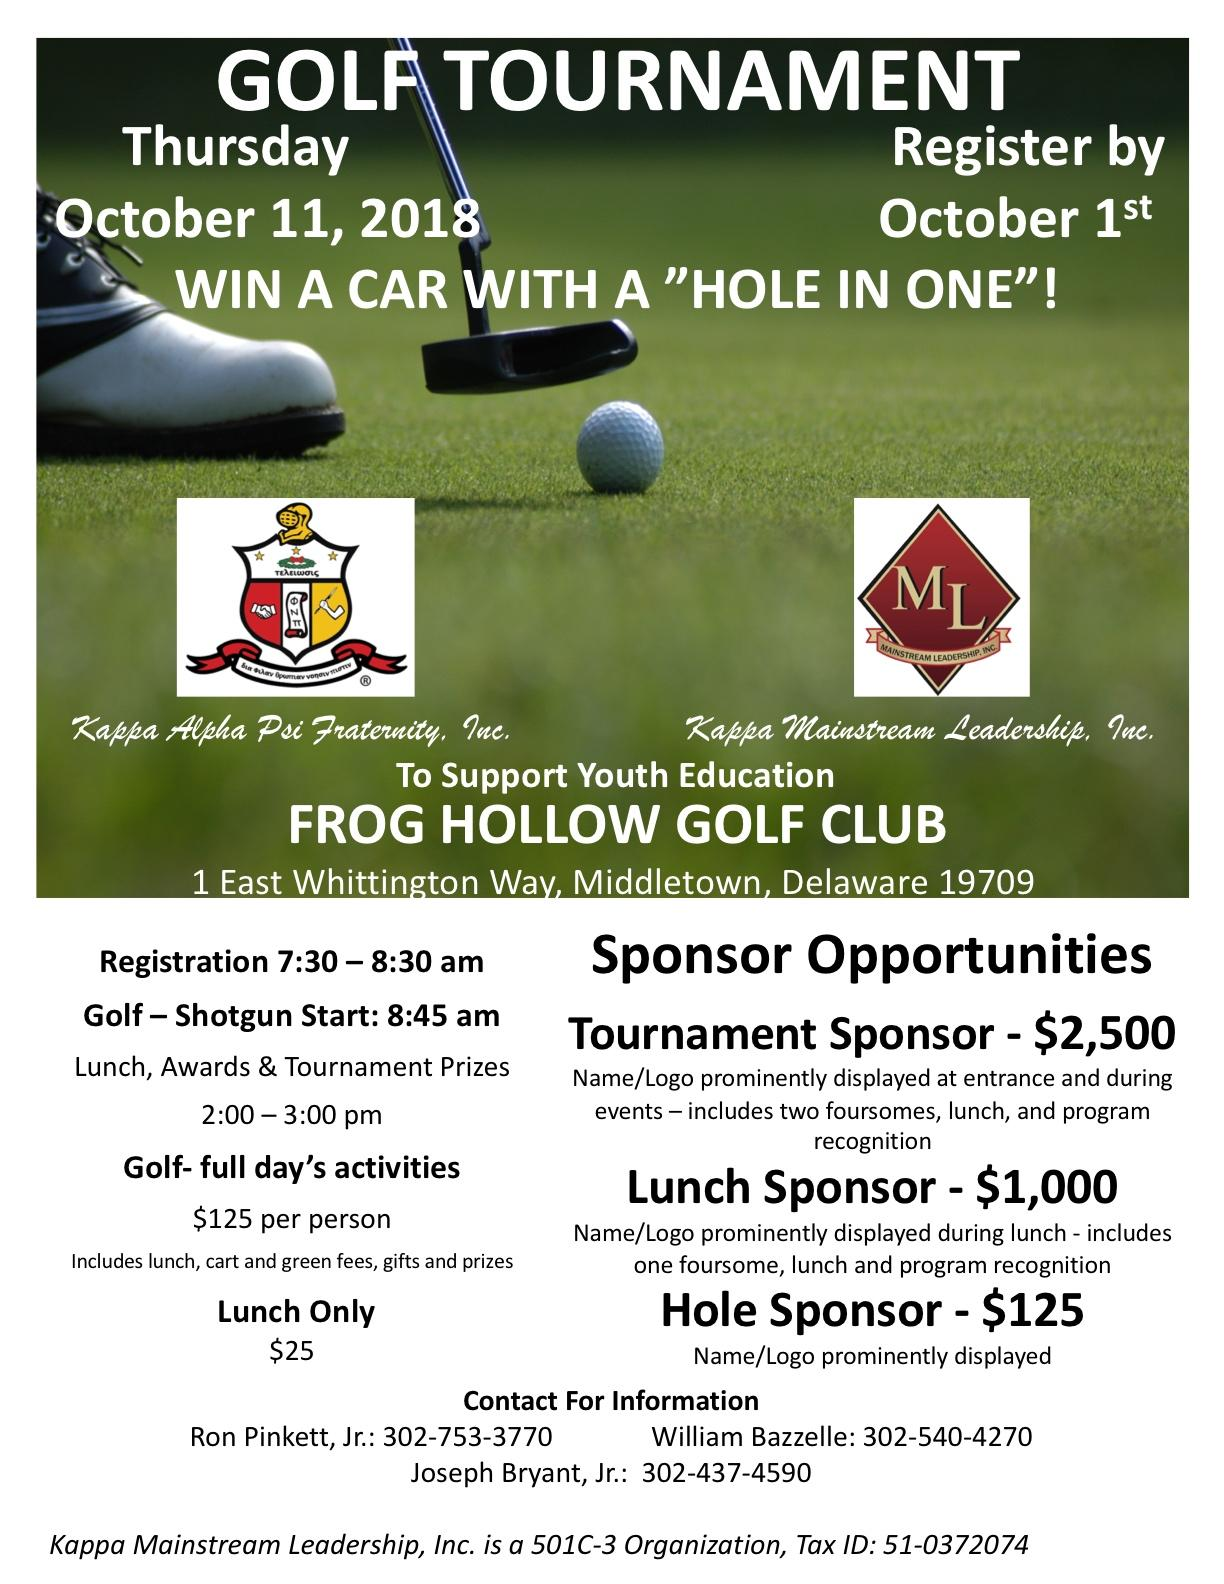 Kappa Mainstream Leadership Golf Tournament